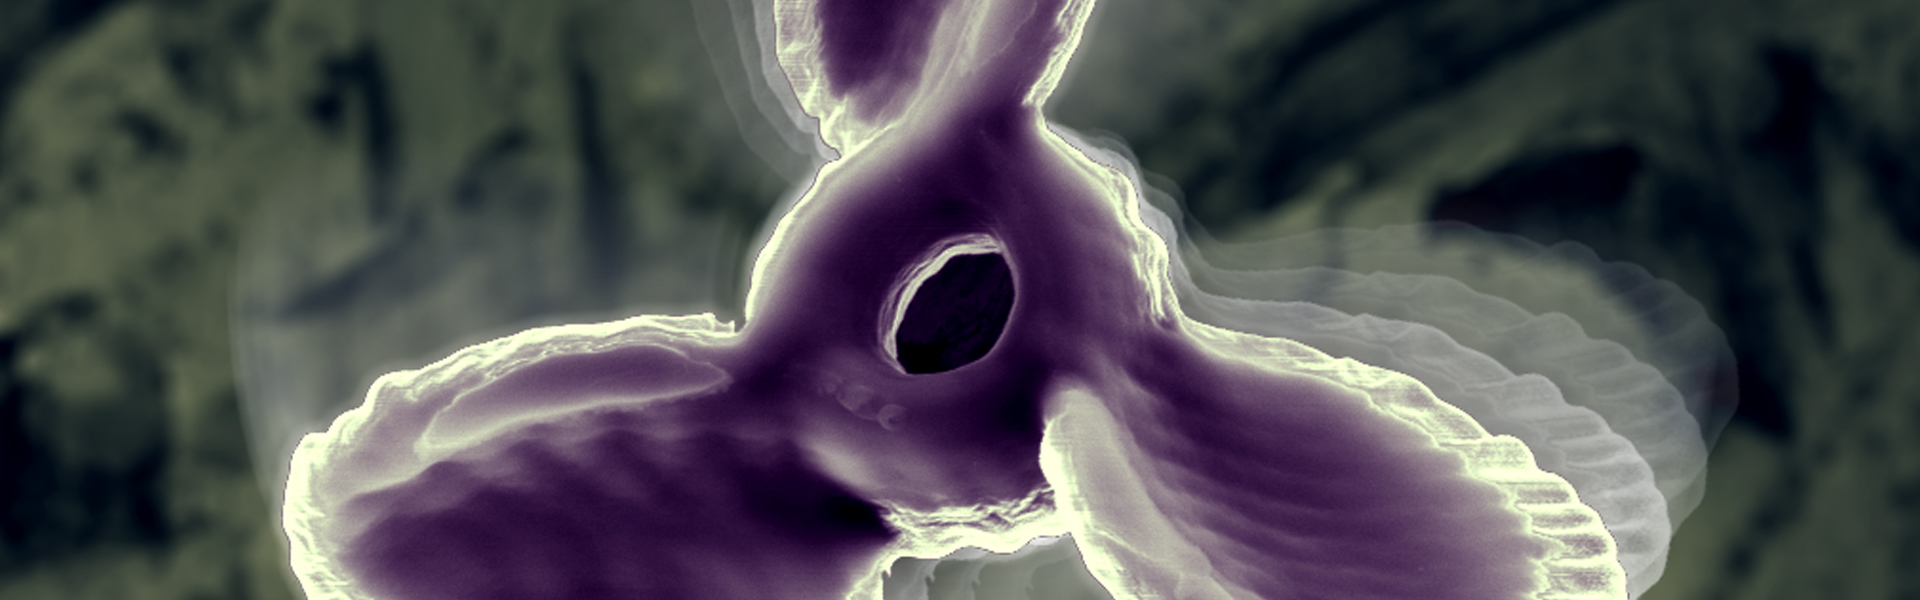 A SEM image depicting a 3-D printed self-propelled micropropeller. These micropropellers are 7 µm from tip-to-tip and swim auton